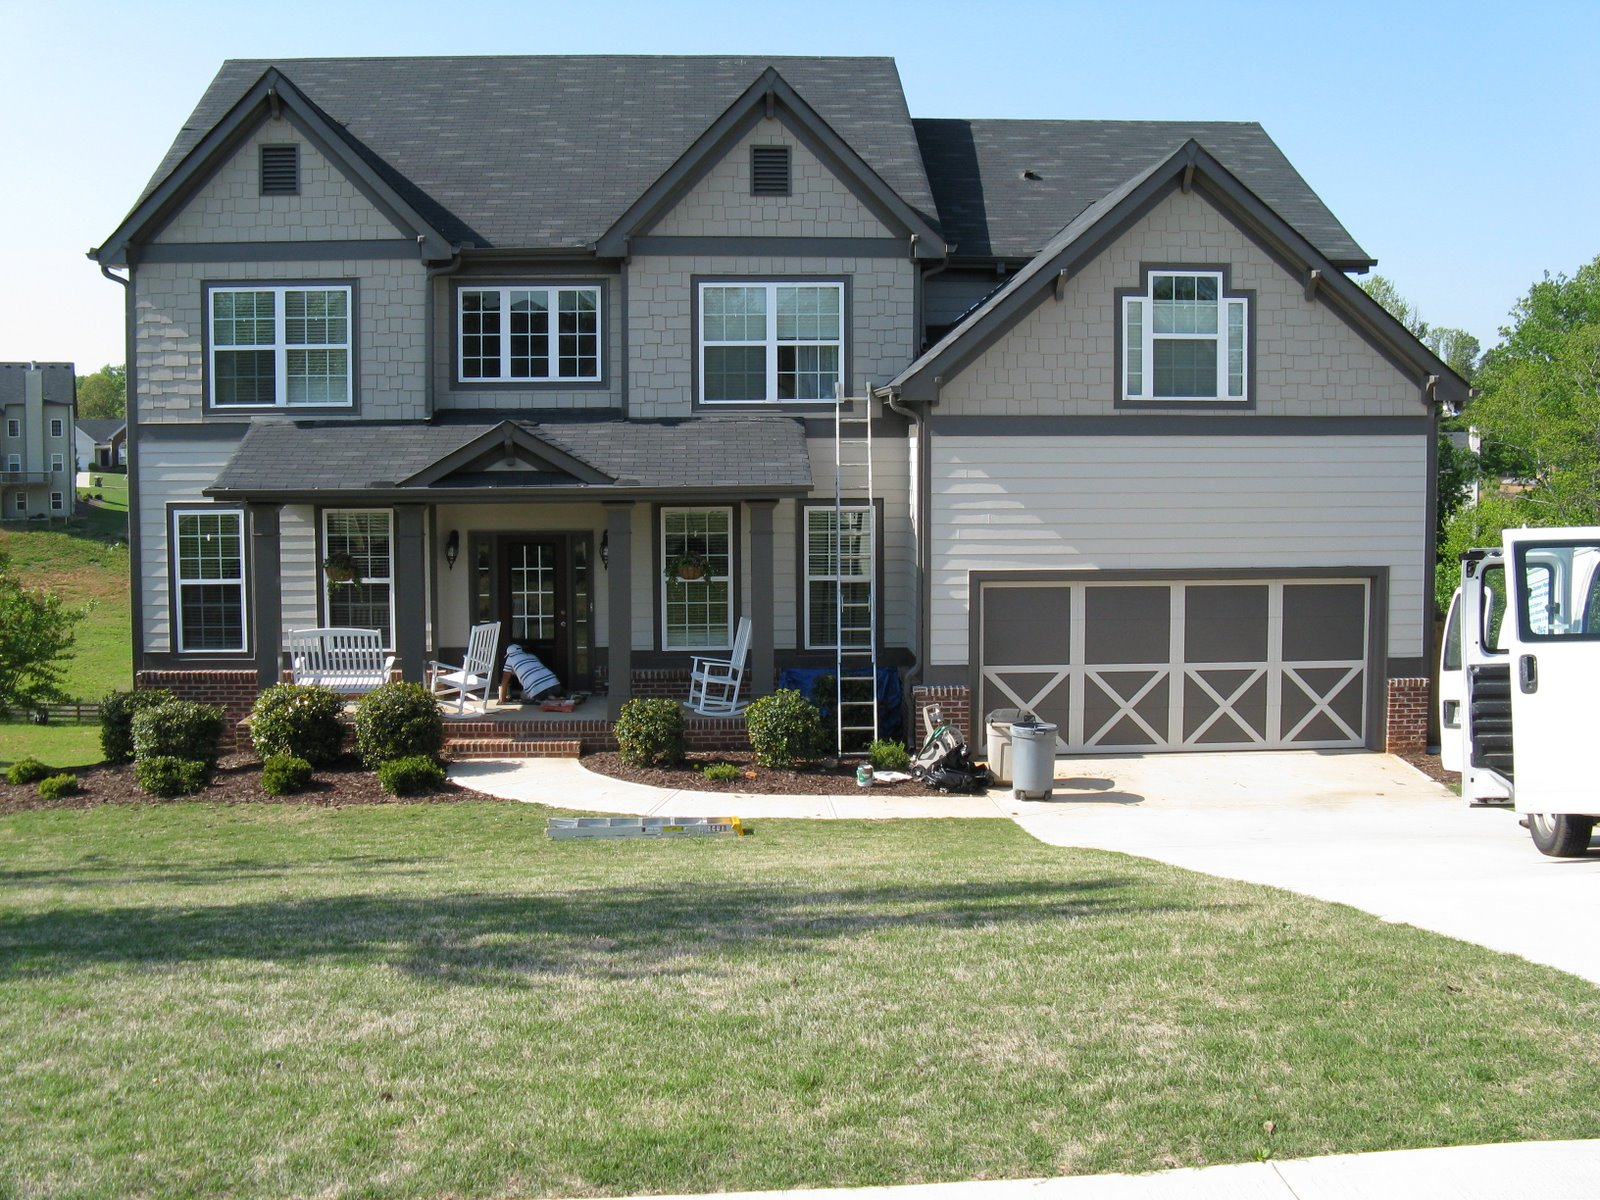 Garage Door Paint Designs - Outdoor house paint color idea windows garage door grass park garage door paint designs